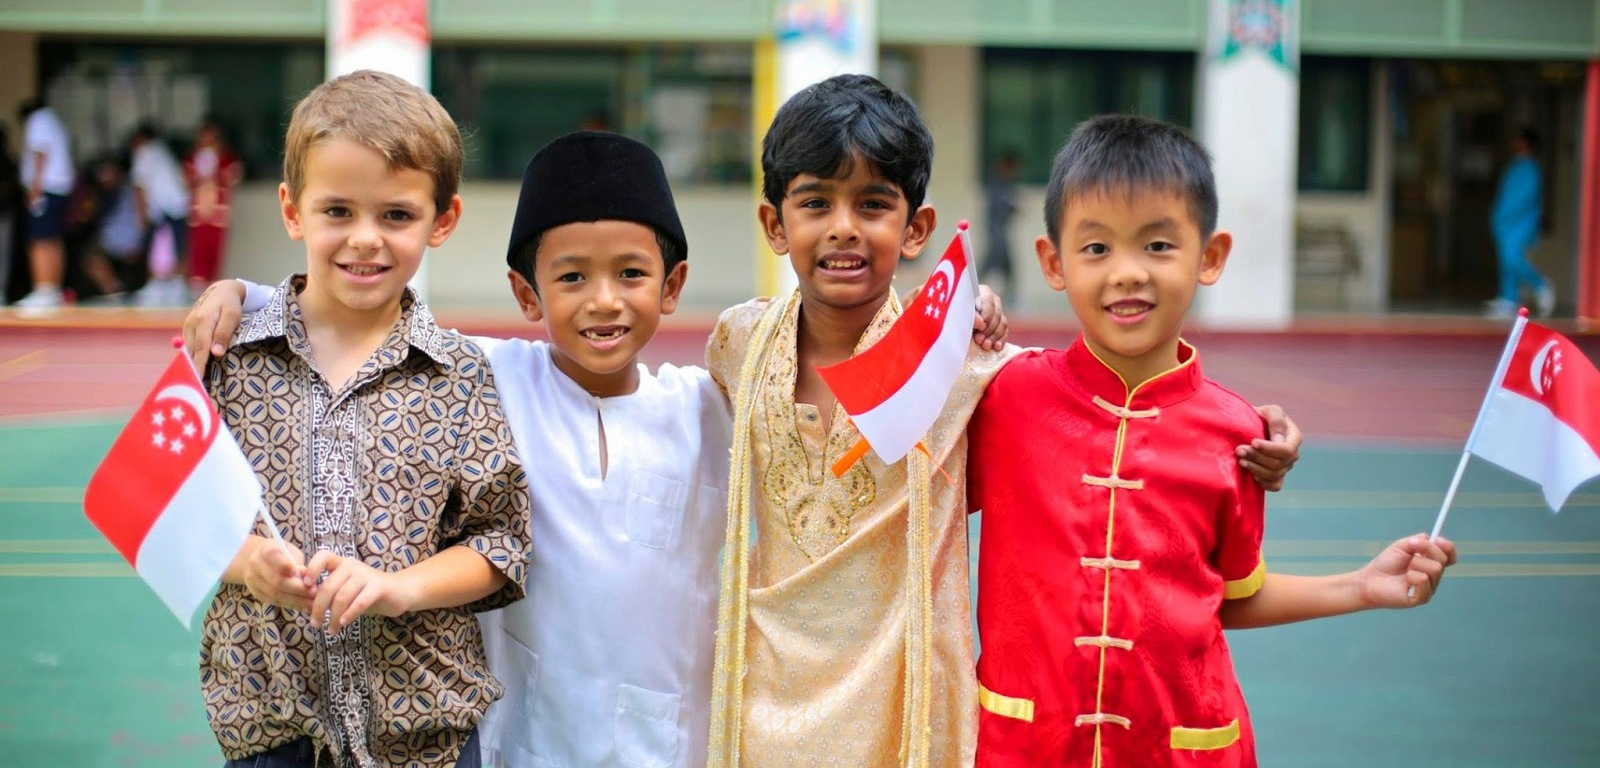 multicultural society in malaysia How do you build a multiracial society according to the nobel prize-winning economist joseph stiglitz, you should look east, to malaysia, for inspiration.